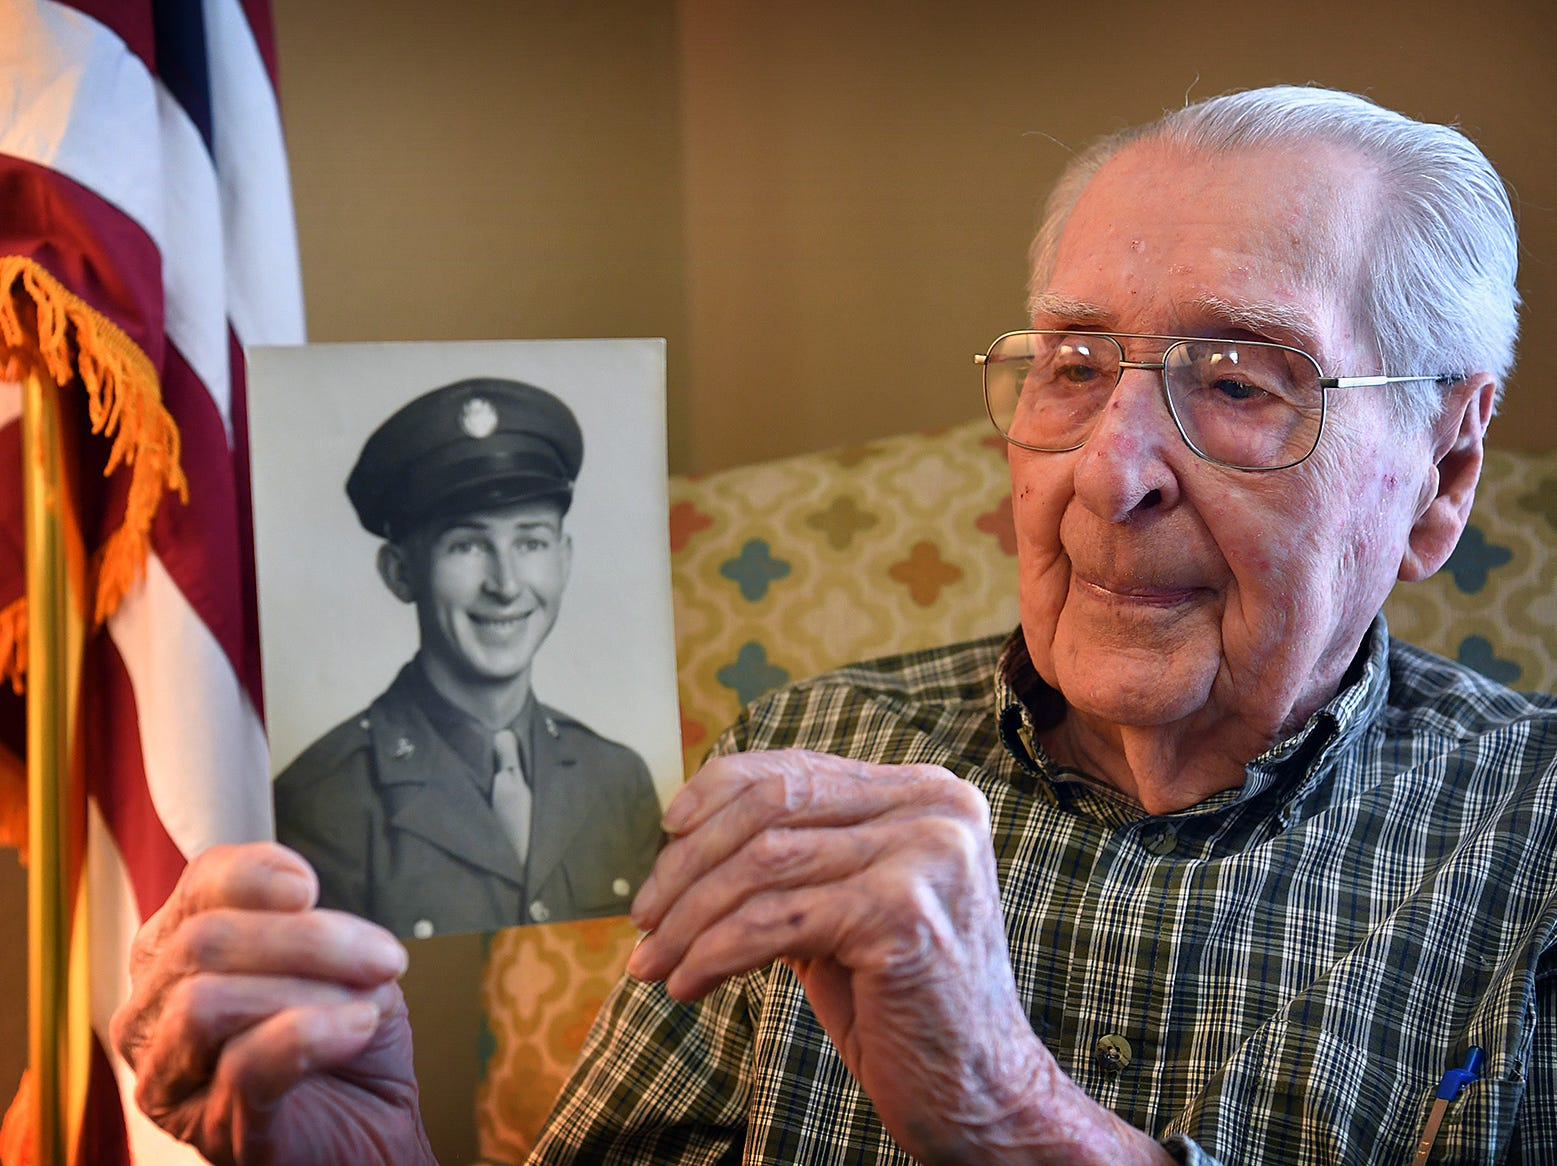 Joe Cuba holds a photograph of himself taken early in his military service in the U.S. Army Air Corps in World War II. Cuba will turn 100-years old on March 2.